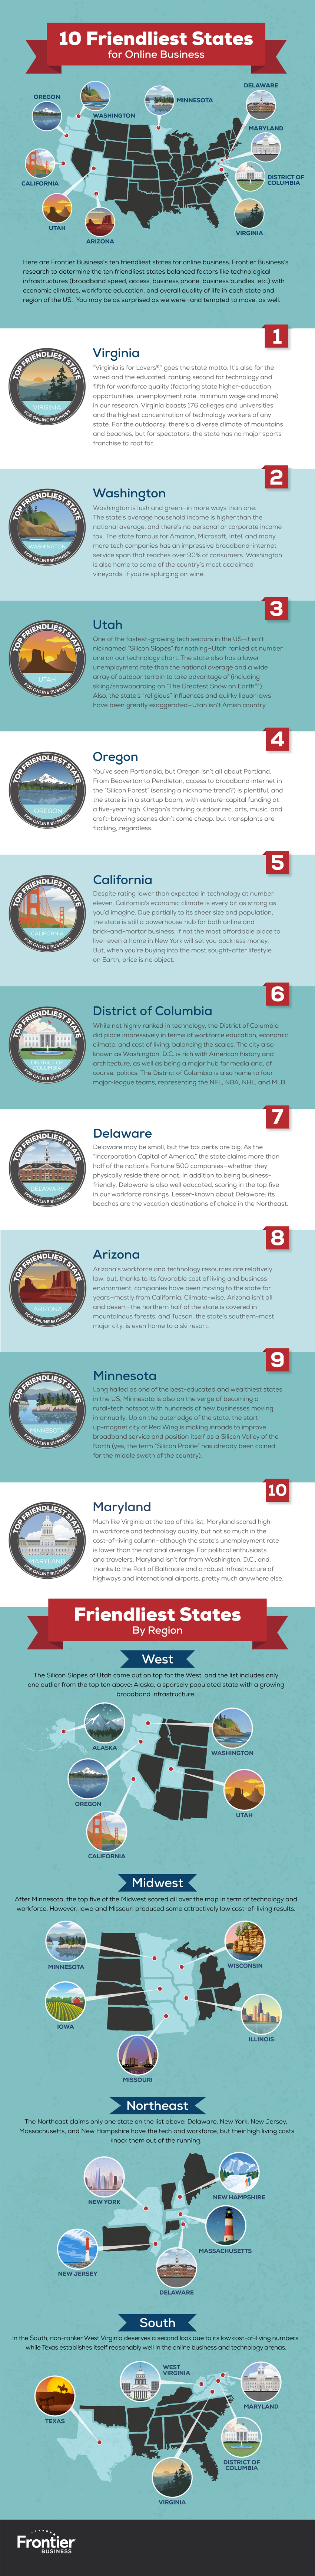 Can You Guess the Best State for Online Businesses?